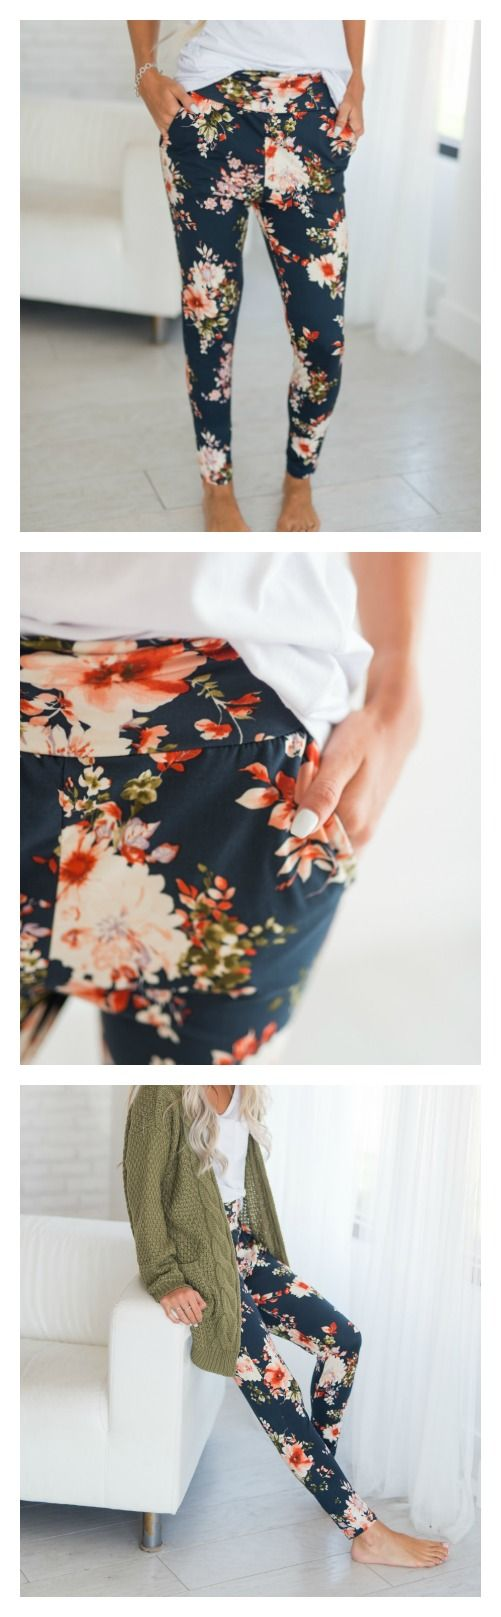 Floral Garden Bottoms via Mindy Mae's Market  ||  floral, joggers, comfs, leggings, floral leggings, casual, comfy, fall outfit, sweater, cardigan, clothing, fashion, style, outfit, outfit ideas, fall